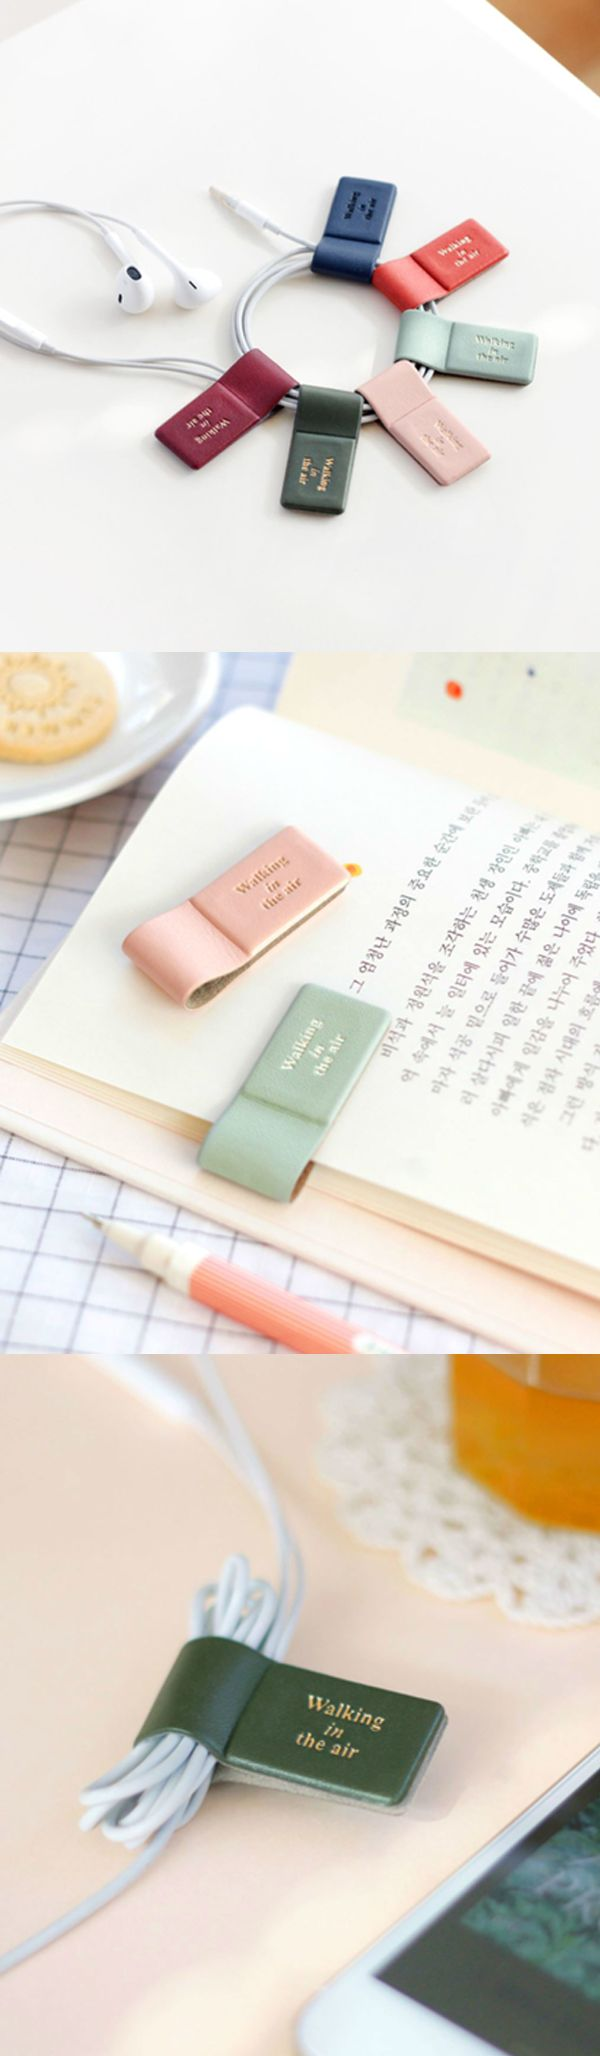 With this colorful winder, organizing earphones and cables becomes a breeze! You can even use it as a pen holder by attaching it to your planner or notebook. Plus, the inner surface is made of suede and it can be used as a screen cleaner. For something this small, it's very functional and versatile!